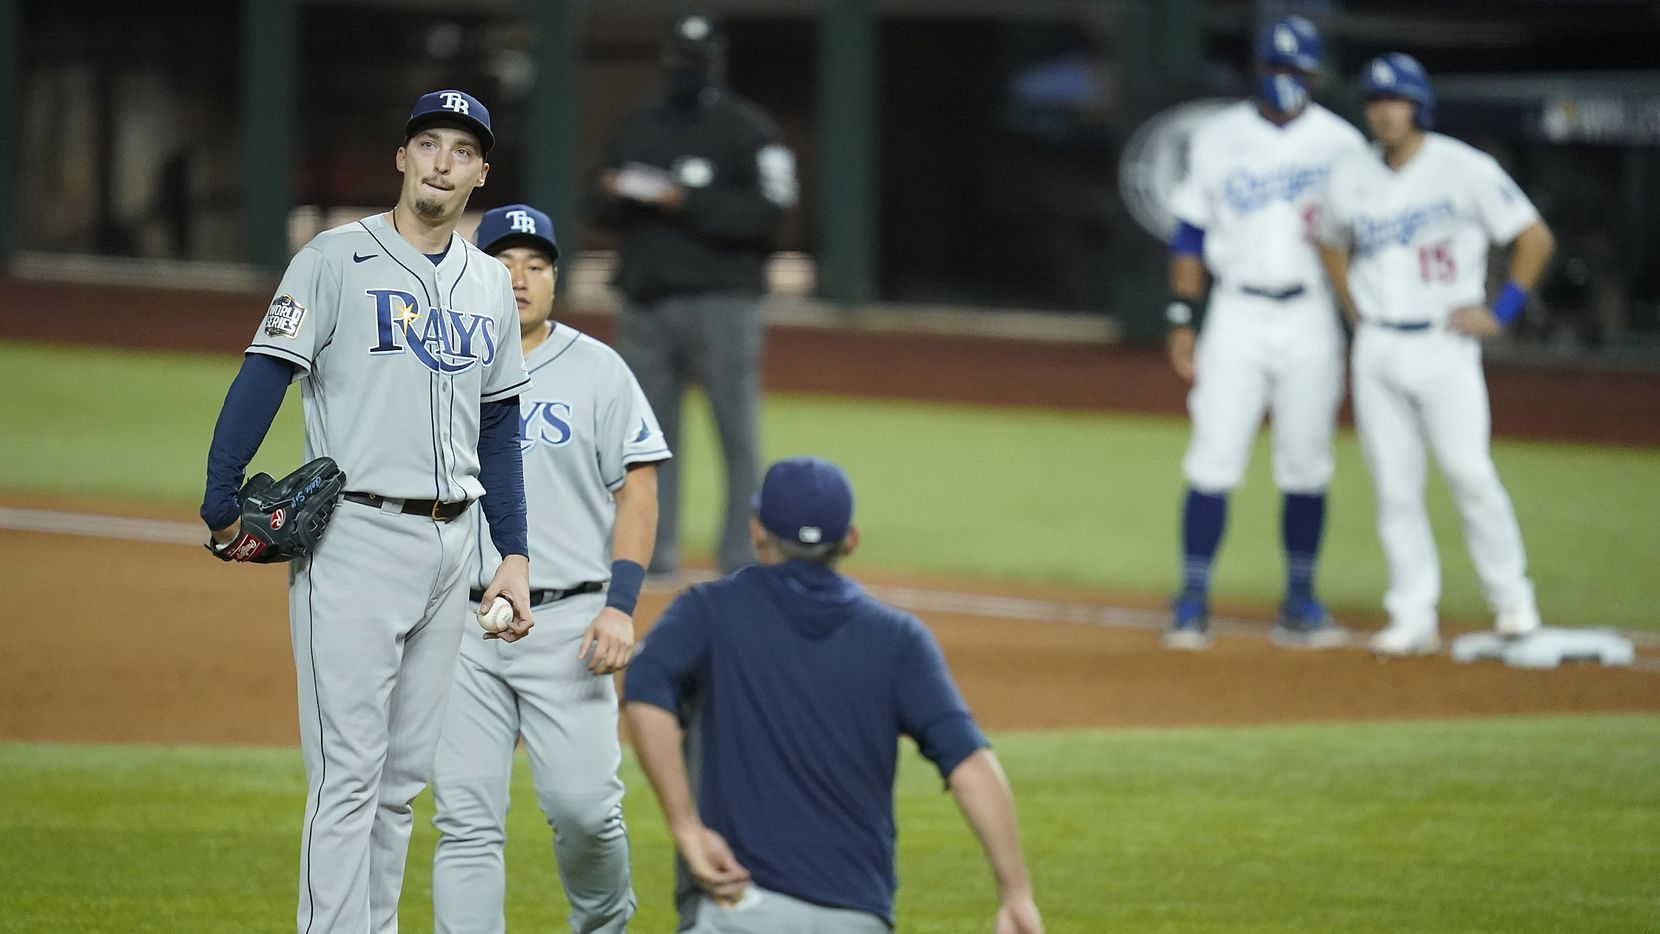 Tampa Bay Rays starting pitcher Blake Snell reacts as manager Kevin Cash comes out of the dugout to remove him from the game after giving up a base hit to Los Angeles Dodgers catcher Austin Barnes (15), only the second hit of the game for the Dodgers, during the sixth inning in Game 6 of the World Series at Globe Life Field on Tuesday, Oct. 27, 2020.